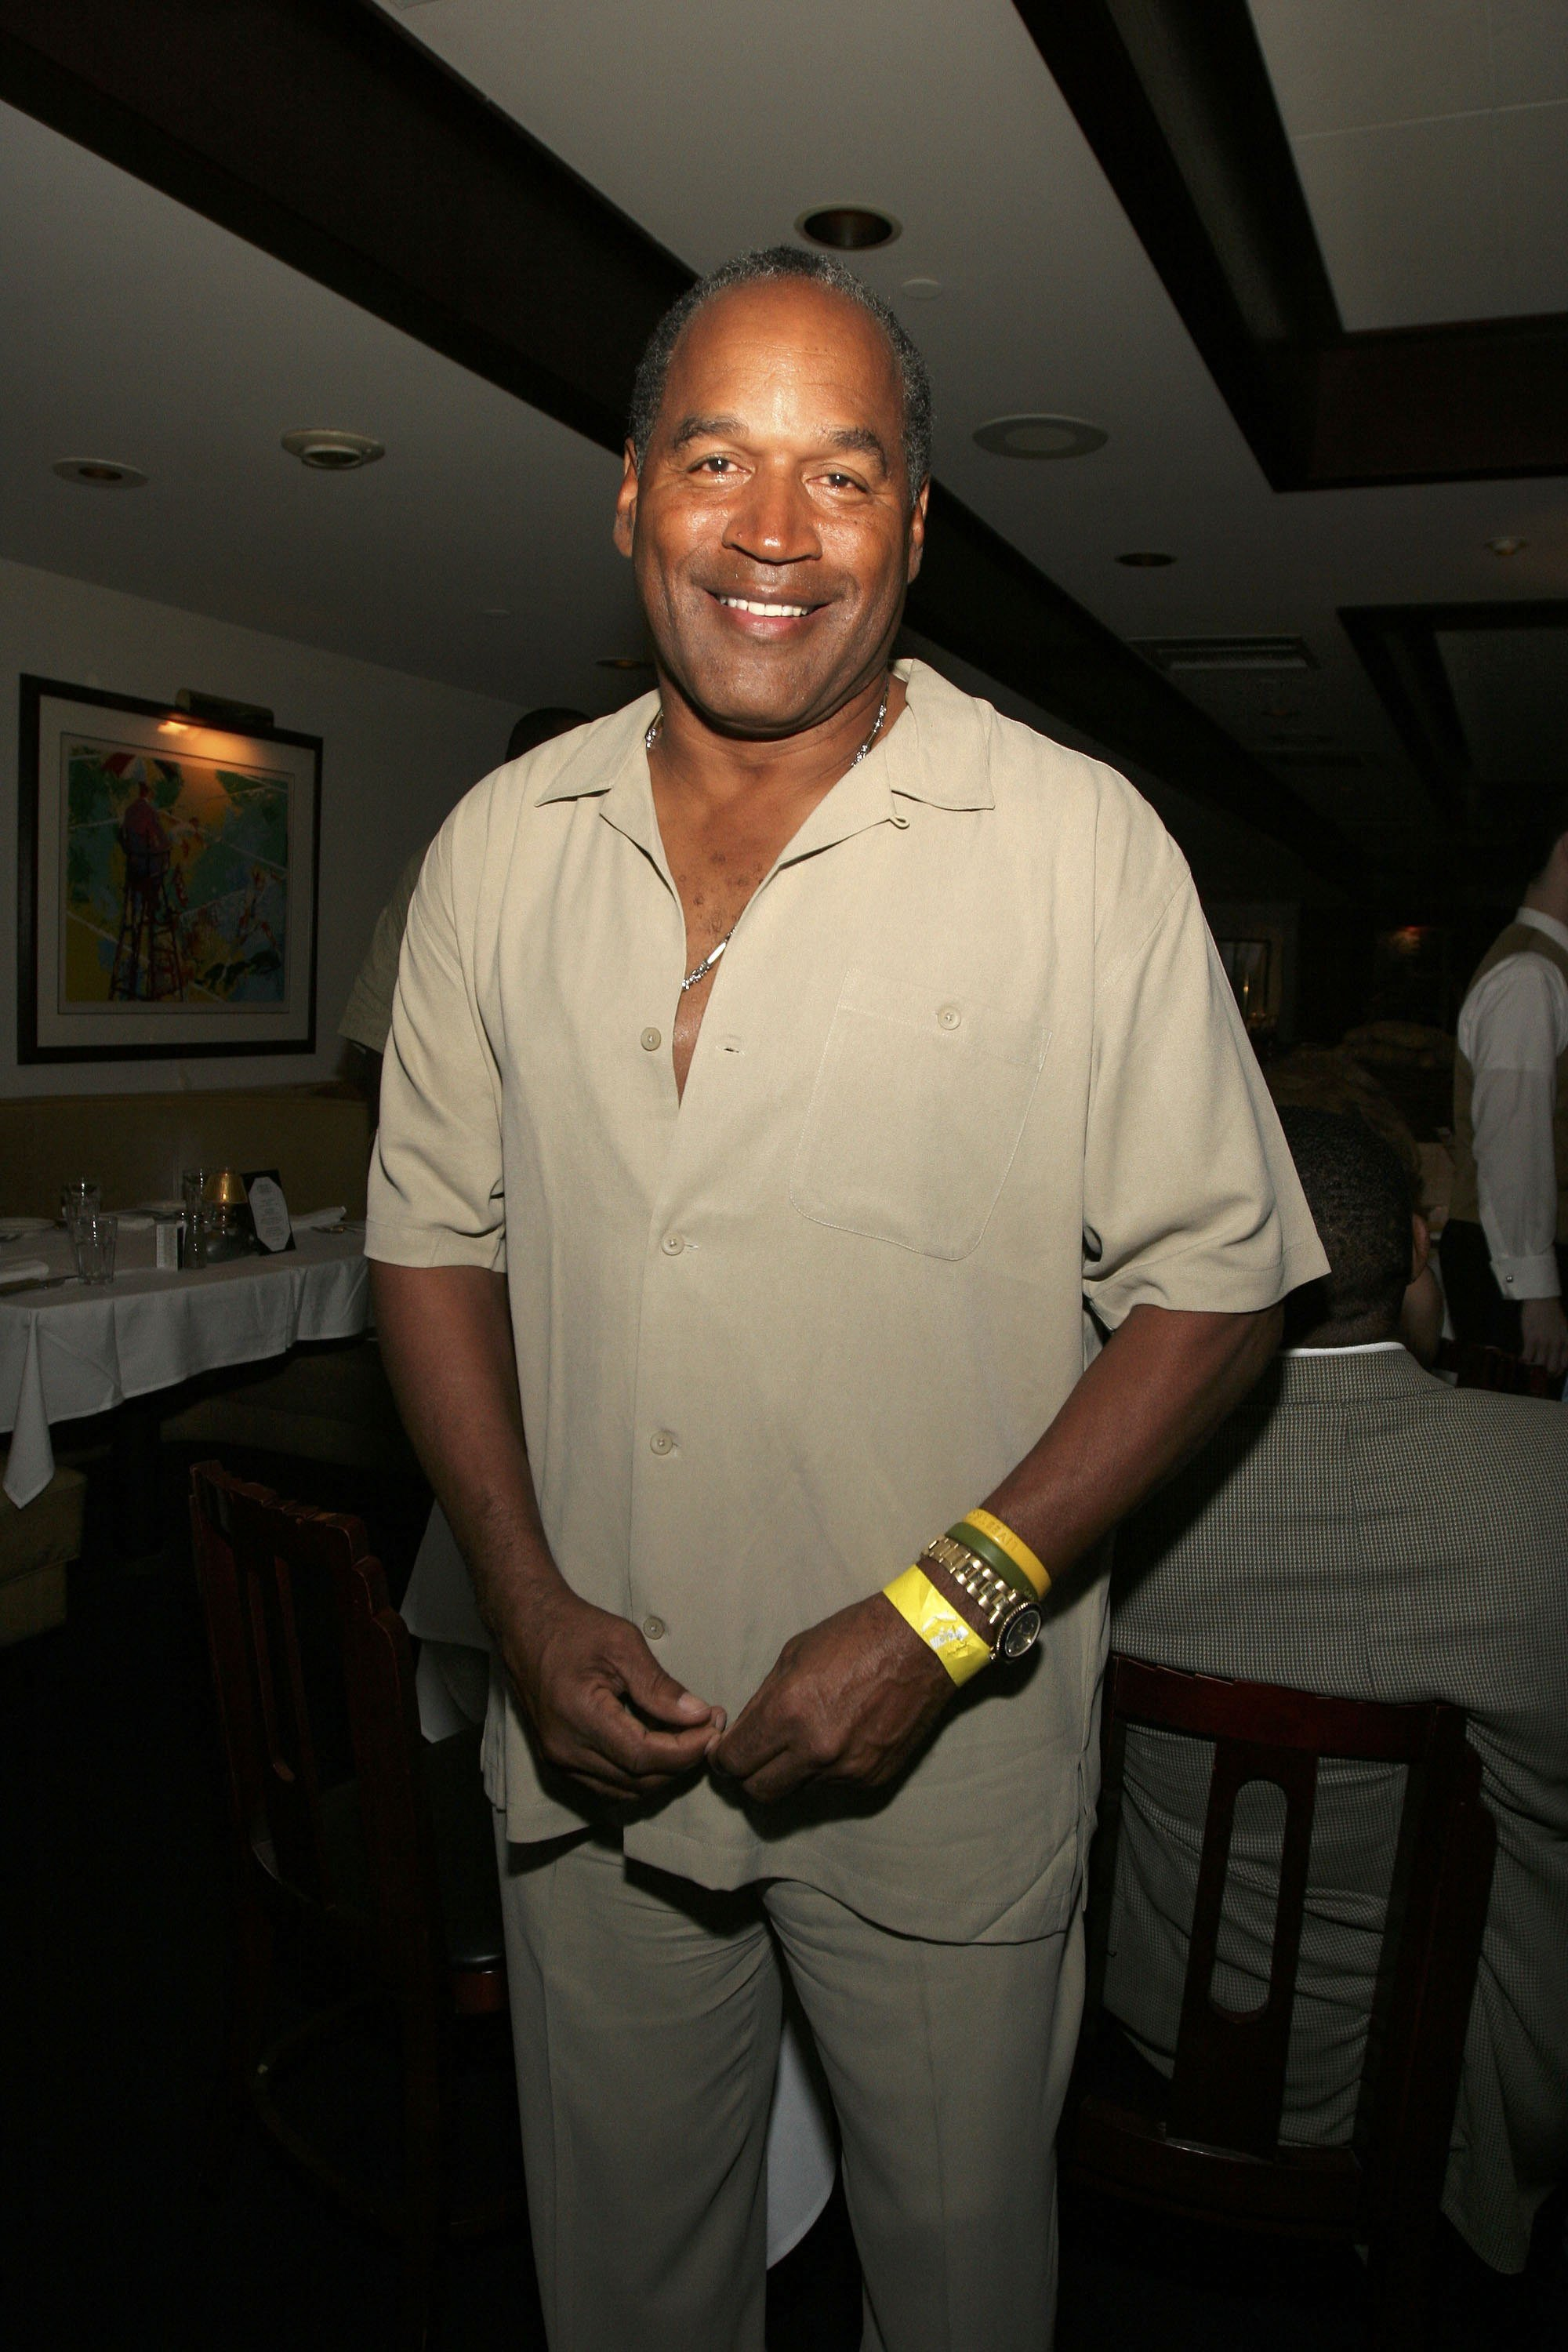 OJ Simpson at a fundraiser in Miami in April 2006. | Photo: Getty Images